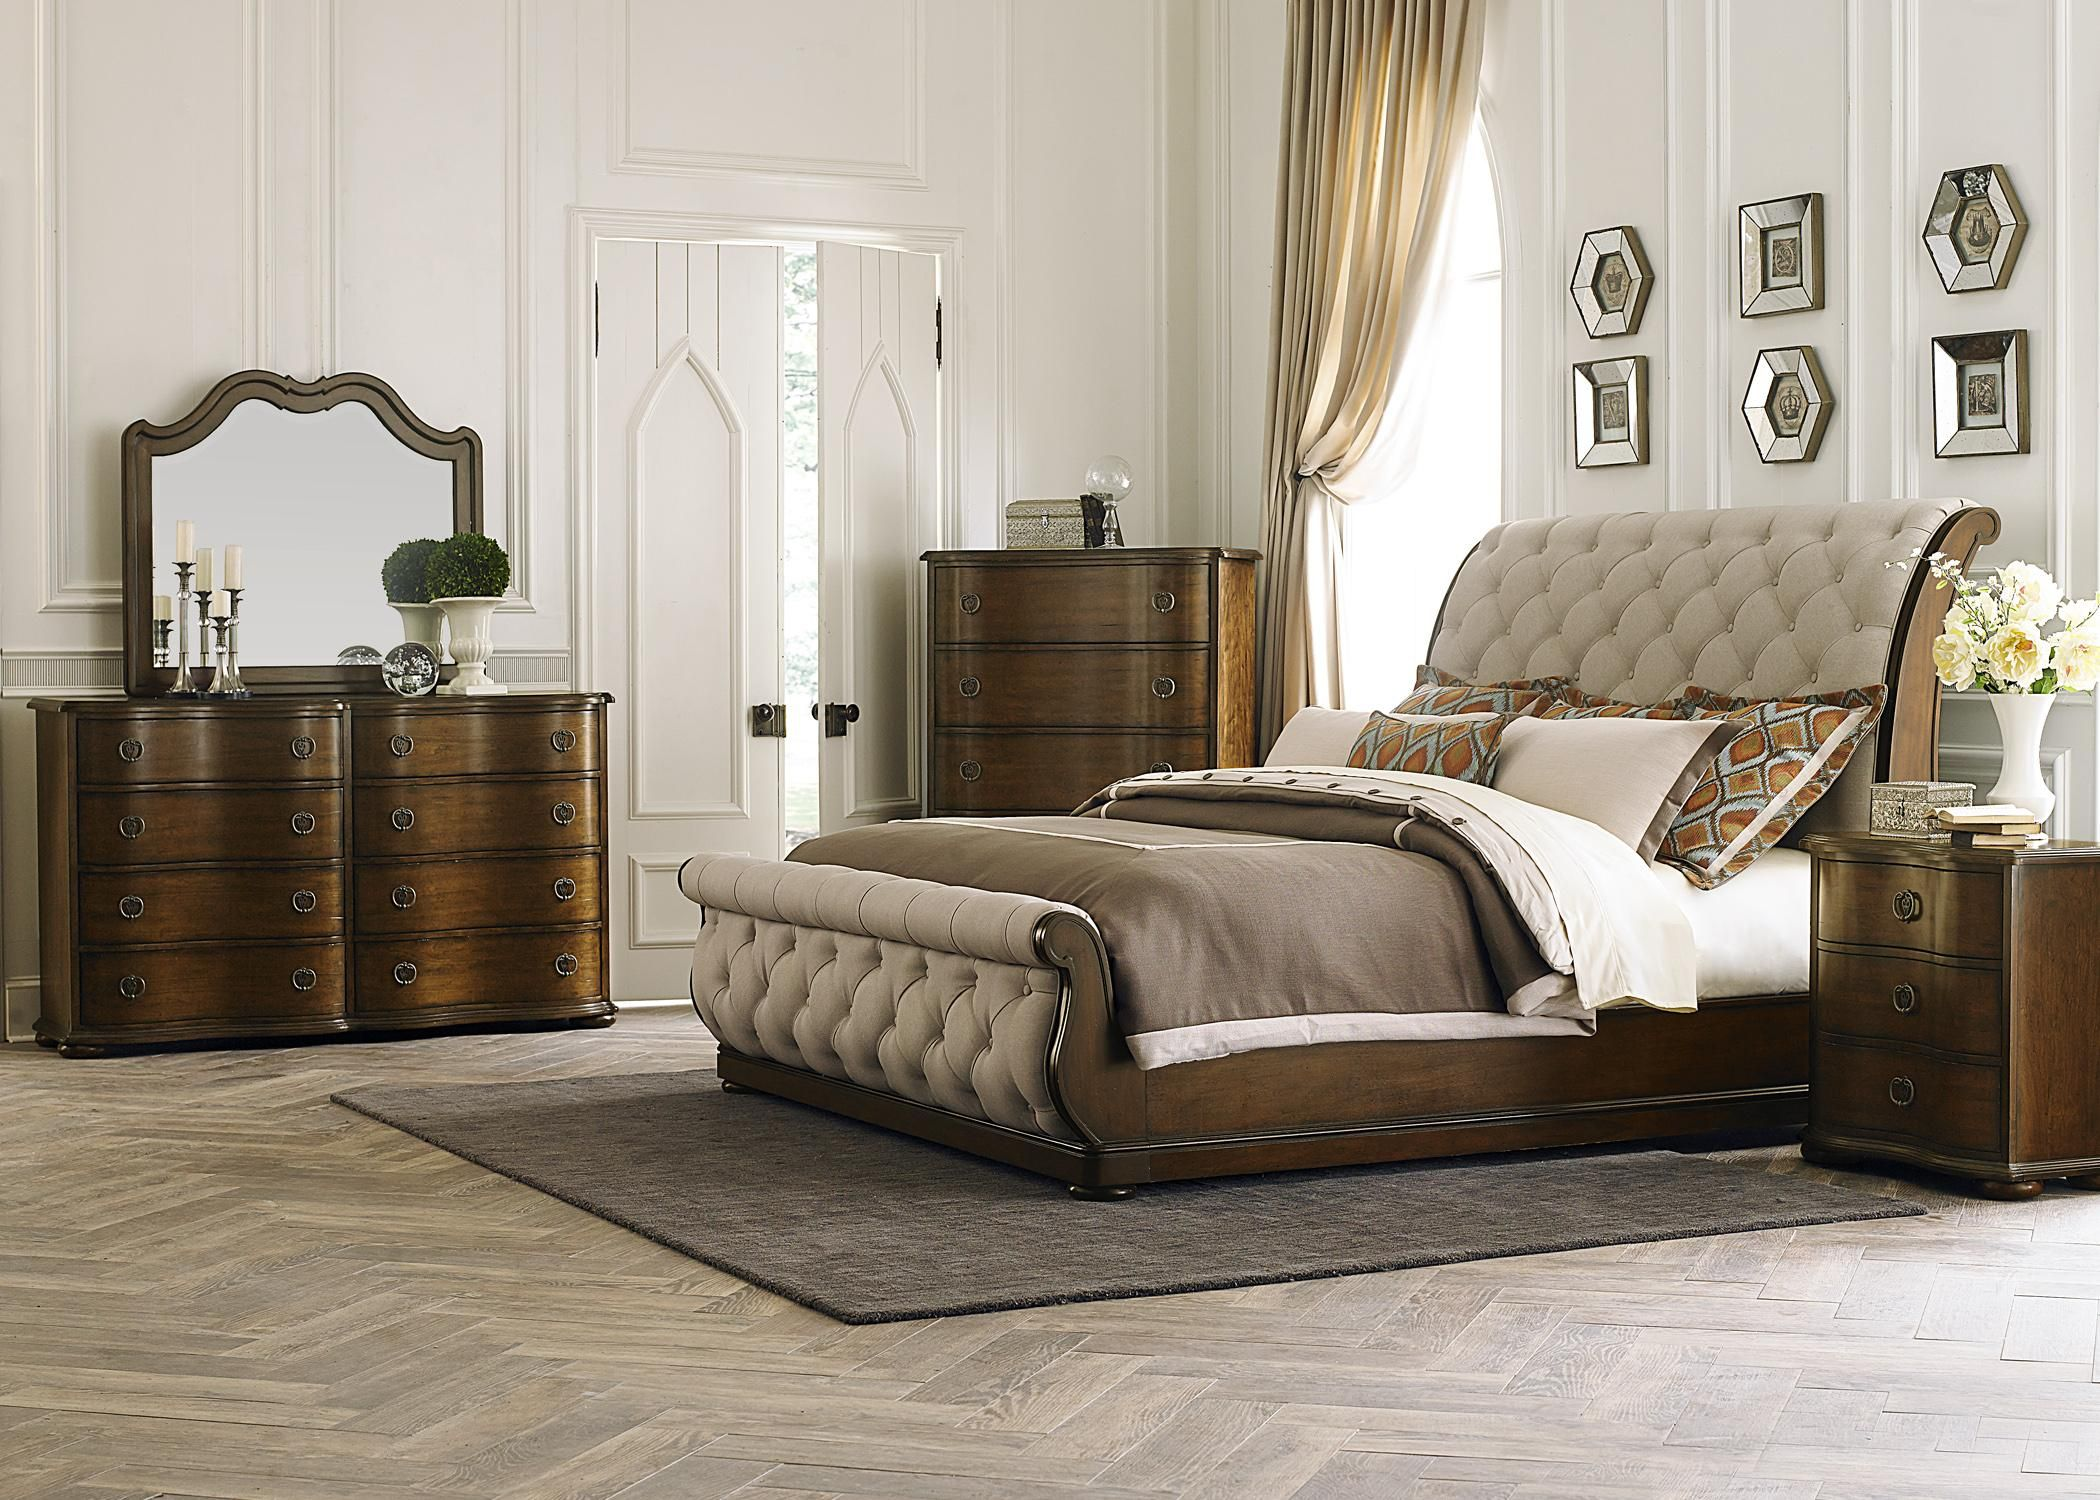 Cotswold King Bedroom Group At Royal Furniture Designed By